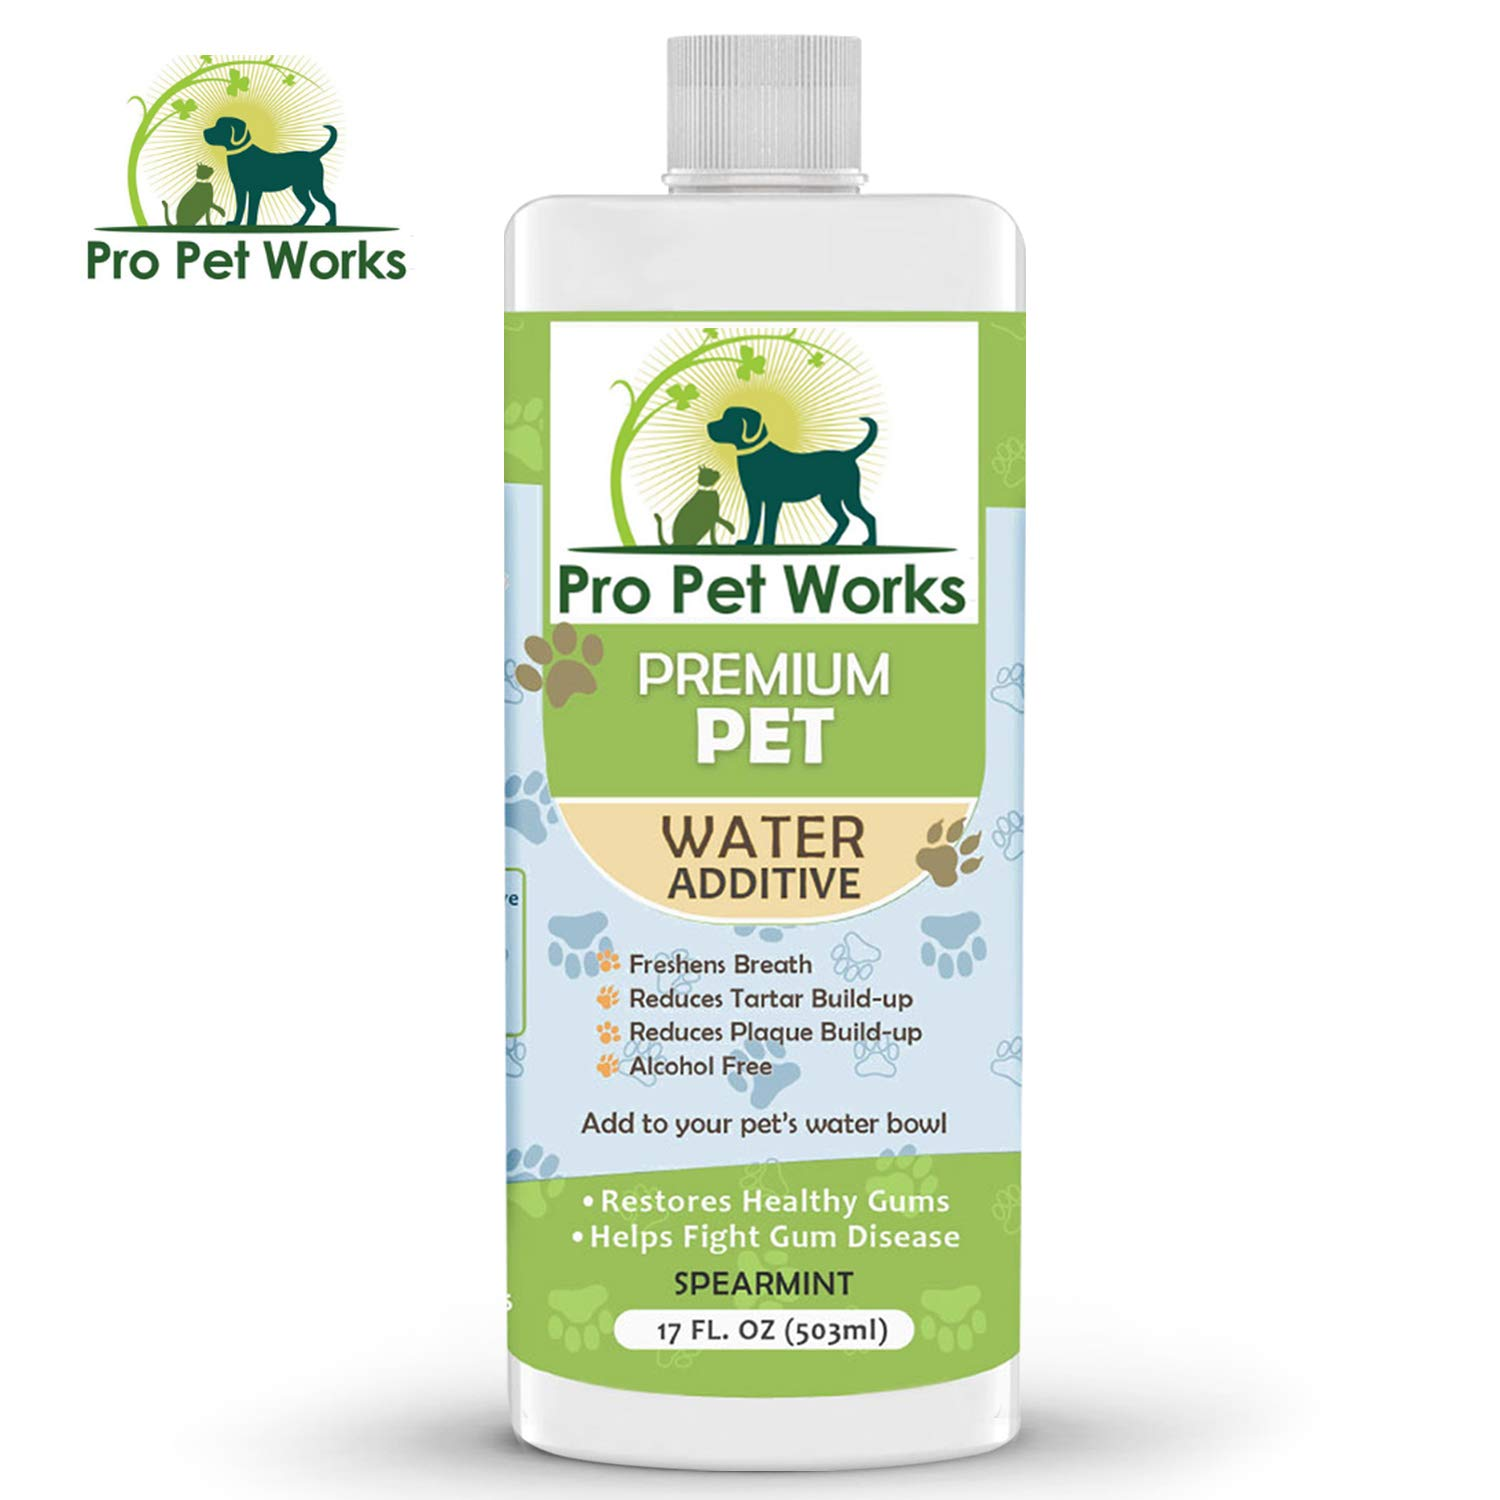 Premium Pet Dental Water Additive for Dogs Cats & Small Animals-Dog Dental Care for Bad Pet Breath-Oral Mouth Care That Fights Tartar, Plaque and Gum Disease- [17 oz] Dog Toothpaste Deodorizer by Pro Pet Works